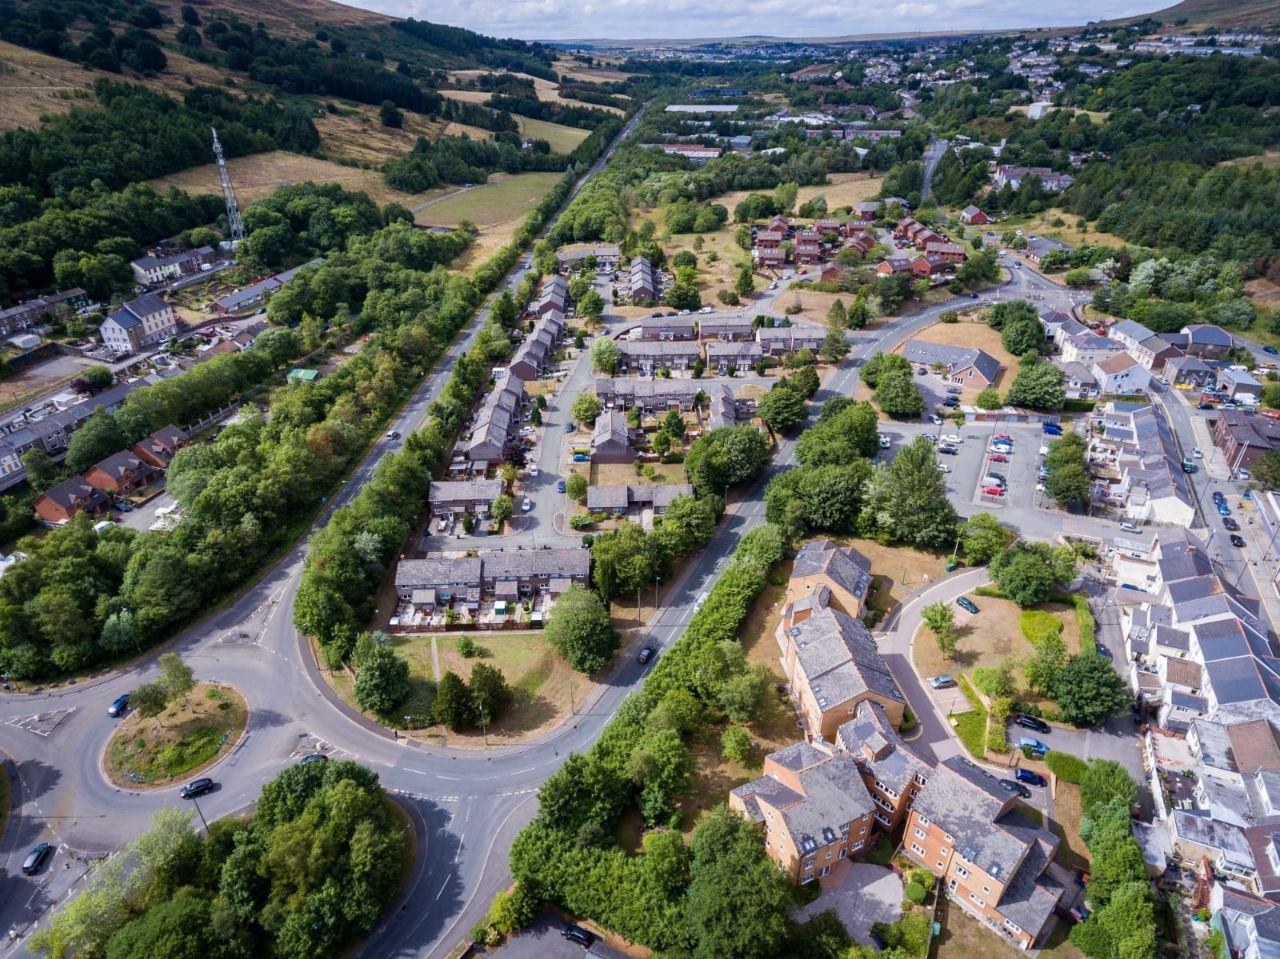 A view of Blaenau Gwent from the sky